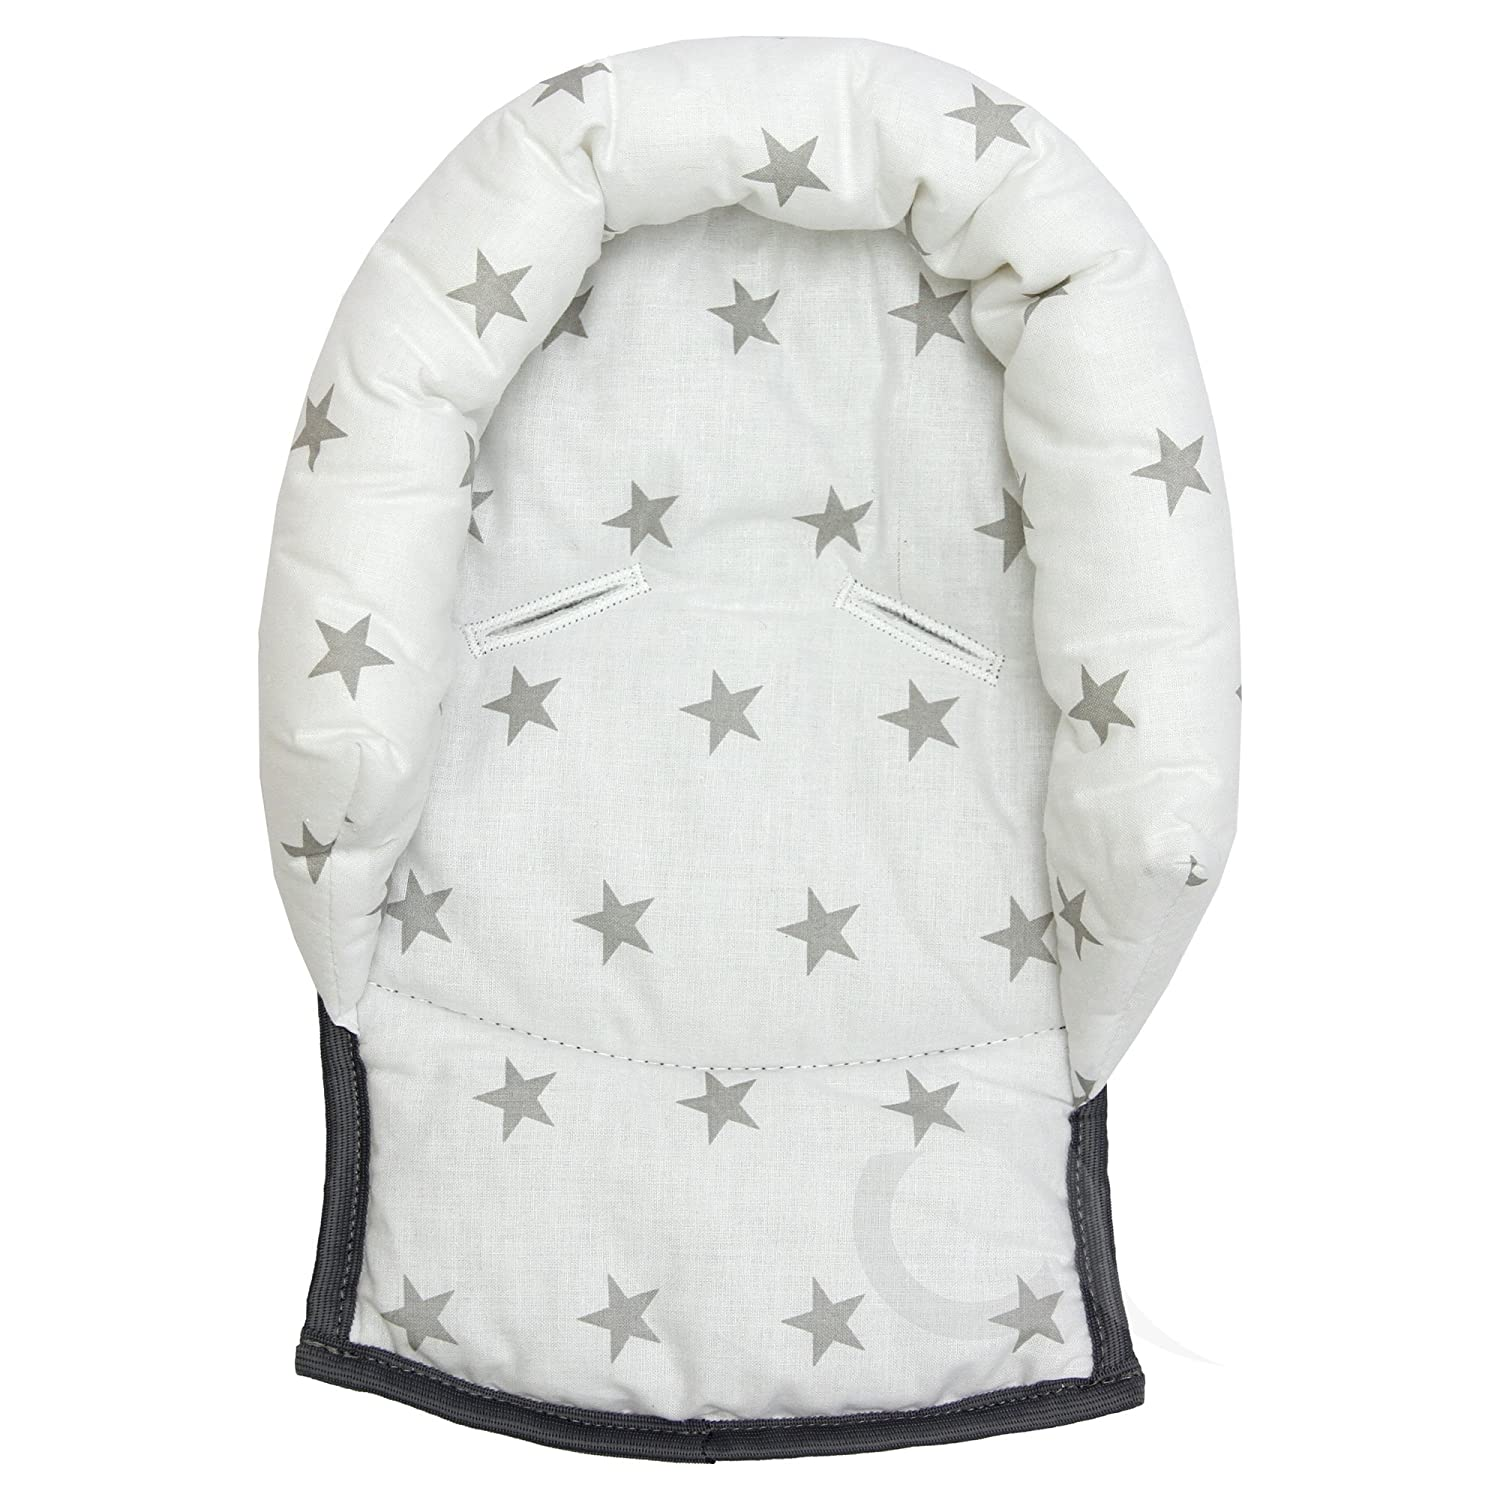 stroller head support pillow Soft Cotton UNIVERSAL Infant \ Baby \ Toddler car seat Folk//white//bl-tr